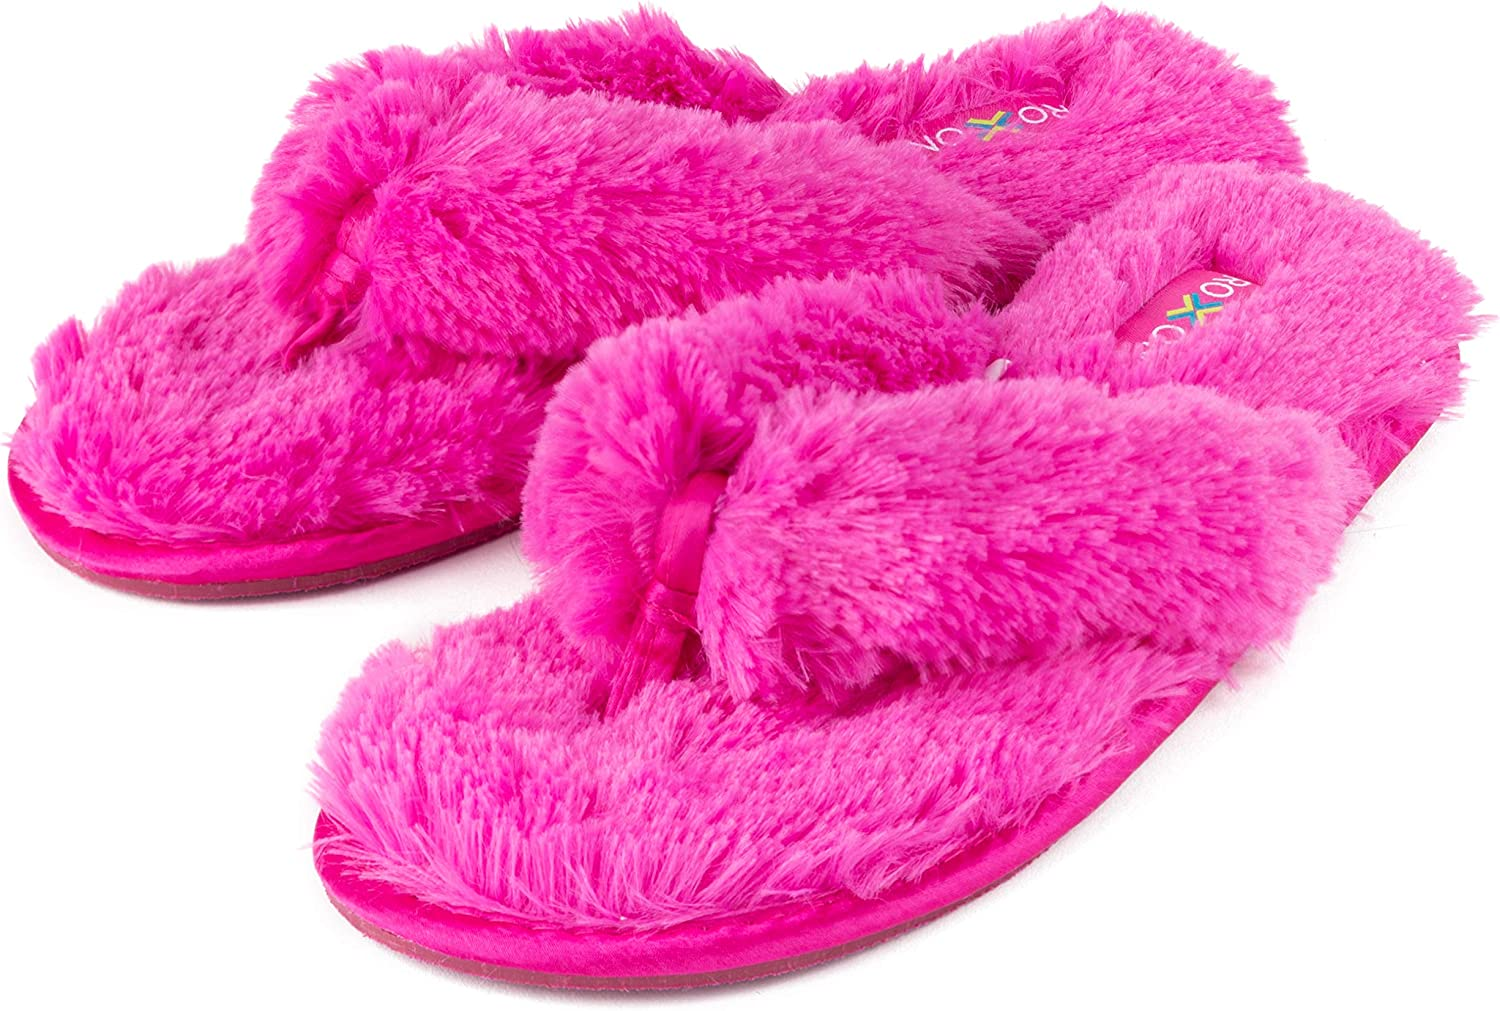 Roxoni Fuzzy House Slippers for Women Comfortable Furry Spa Thongs Cozy Slip On Flip Flops Soft Insole & Rubber Outsole